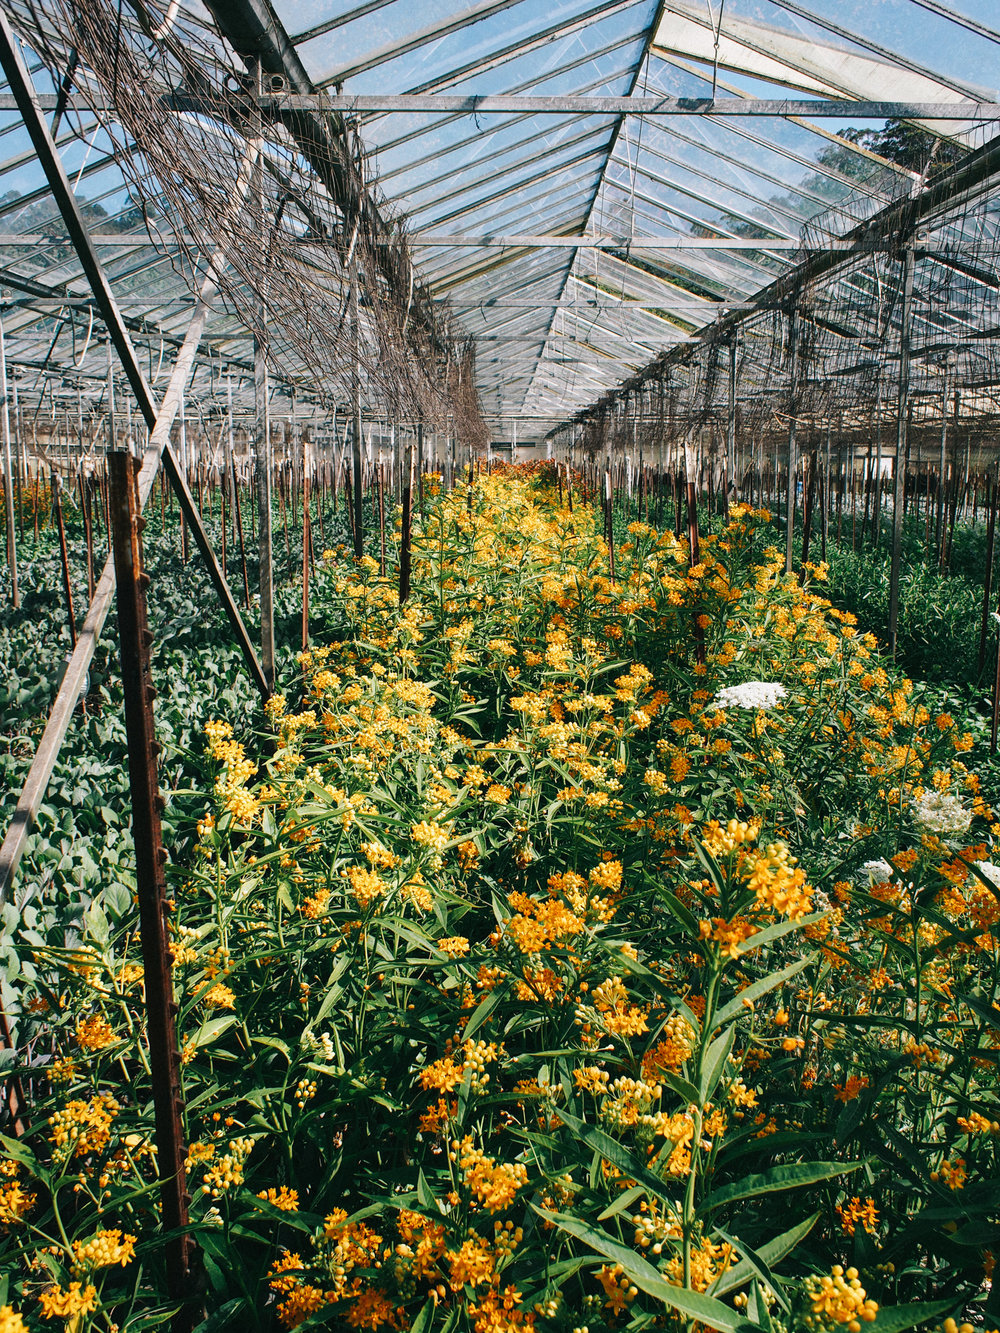 where the flowers grow, check out our visit to this flower farm on the blog | A Fabulous Fete